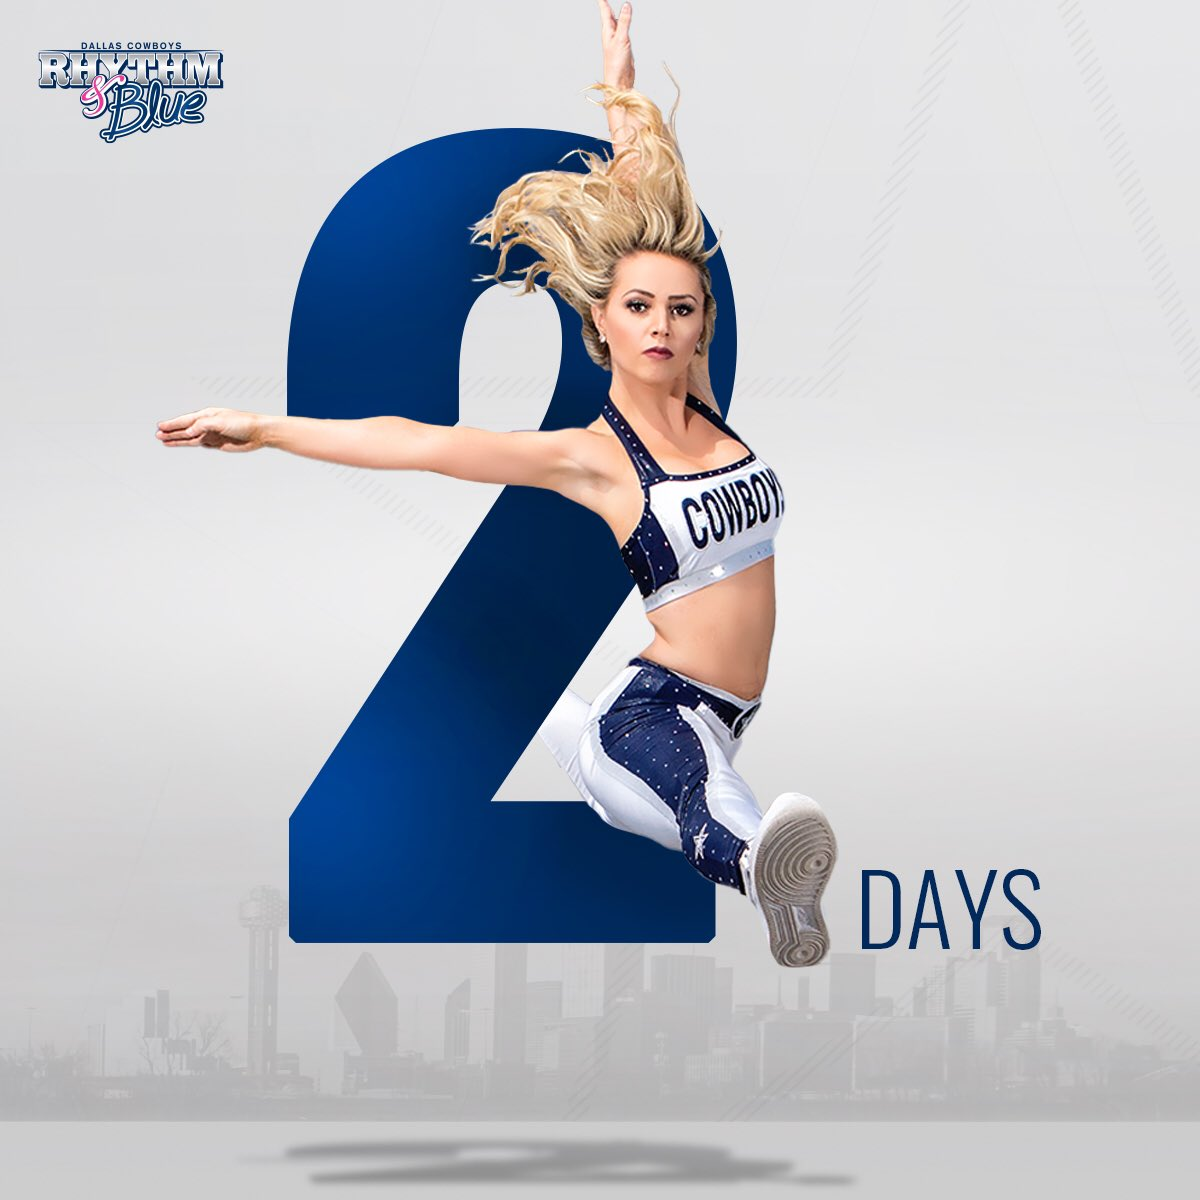 Only 2️⃣ days left to apply for the first ever online DCRB Dancer Auditions. Tag someone who should take the chance and chase their dreams to become a Dallas Cowboys Rhythm & Blue Dancer!  Apply today at https://t.co/38h2Qax3bI  📸 @rhileephotog https://t.co/va7KtKZ04T